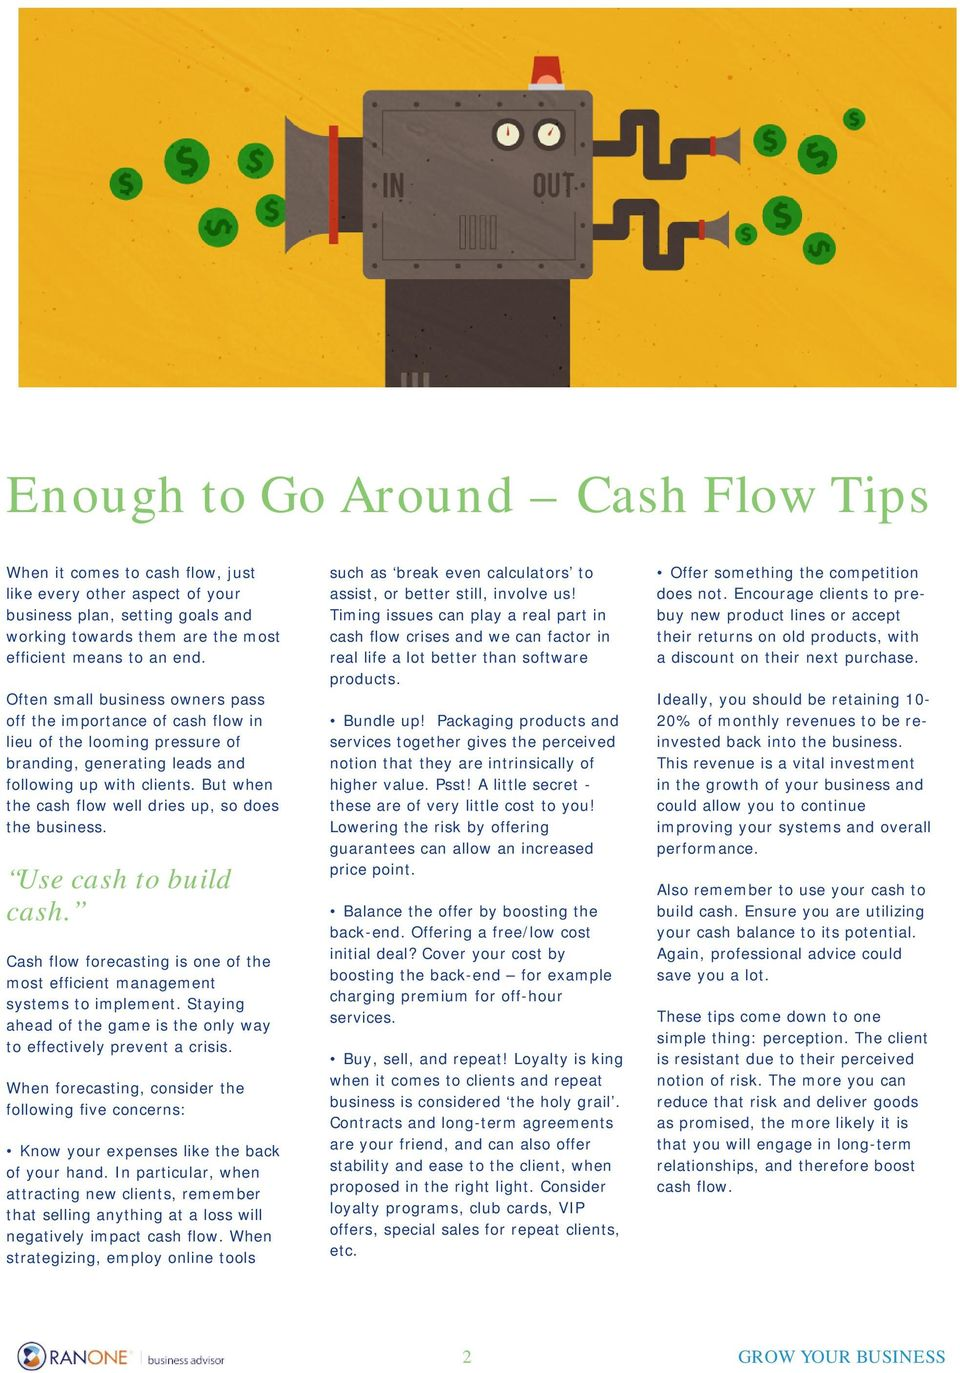 But when the cash flow well dries up, so does the business. Use cash to build cash. Cash flow forecasting is one of the most efficient management systems to implement.